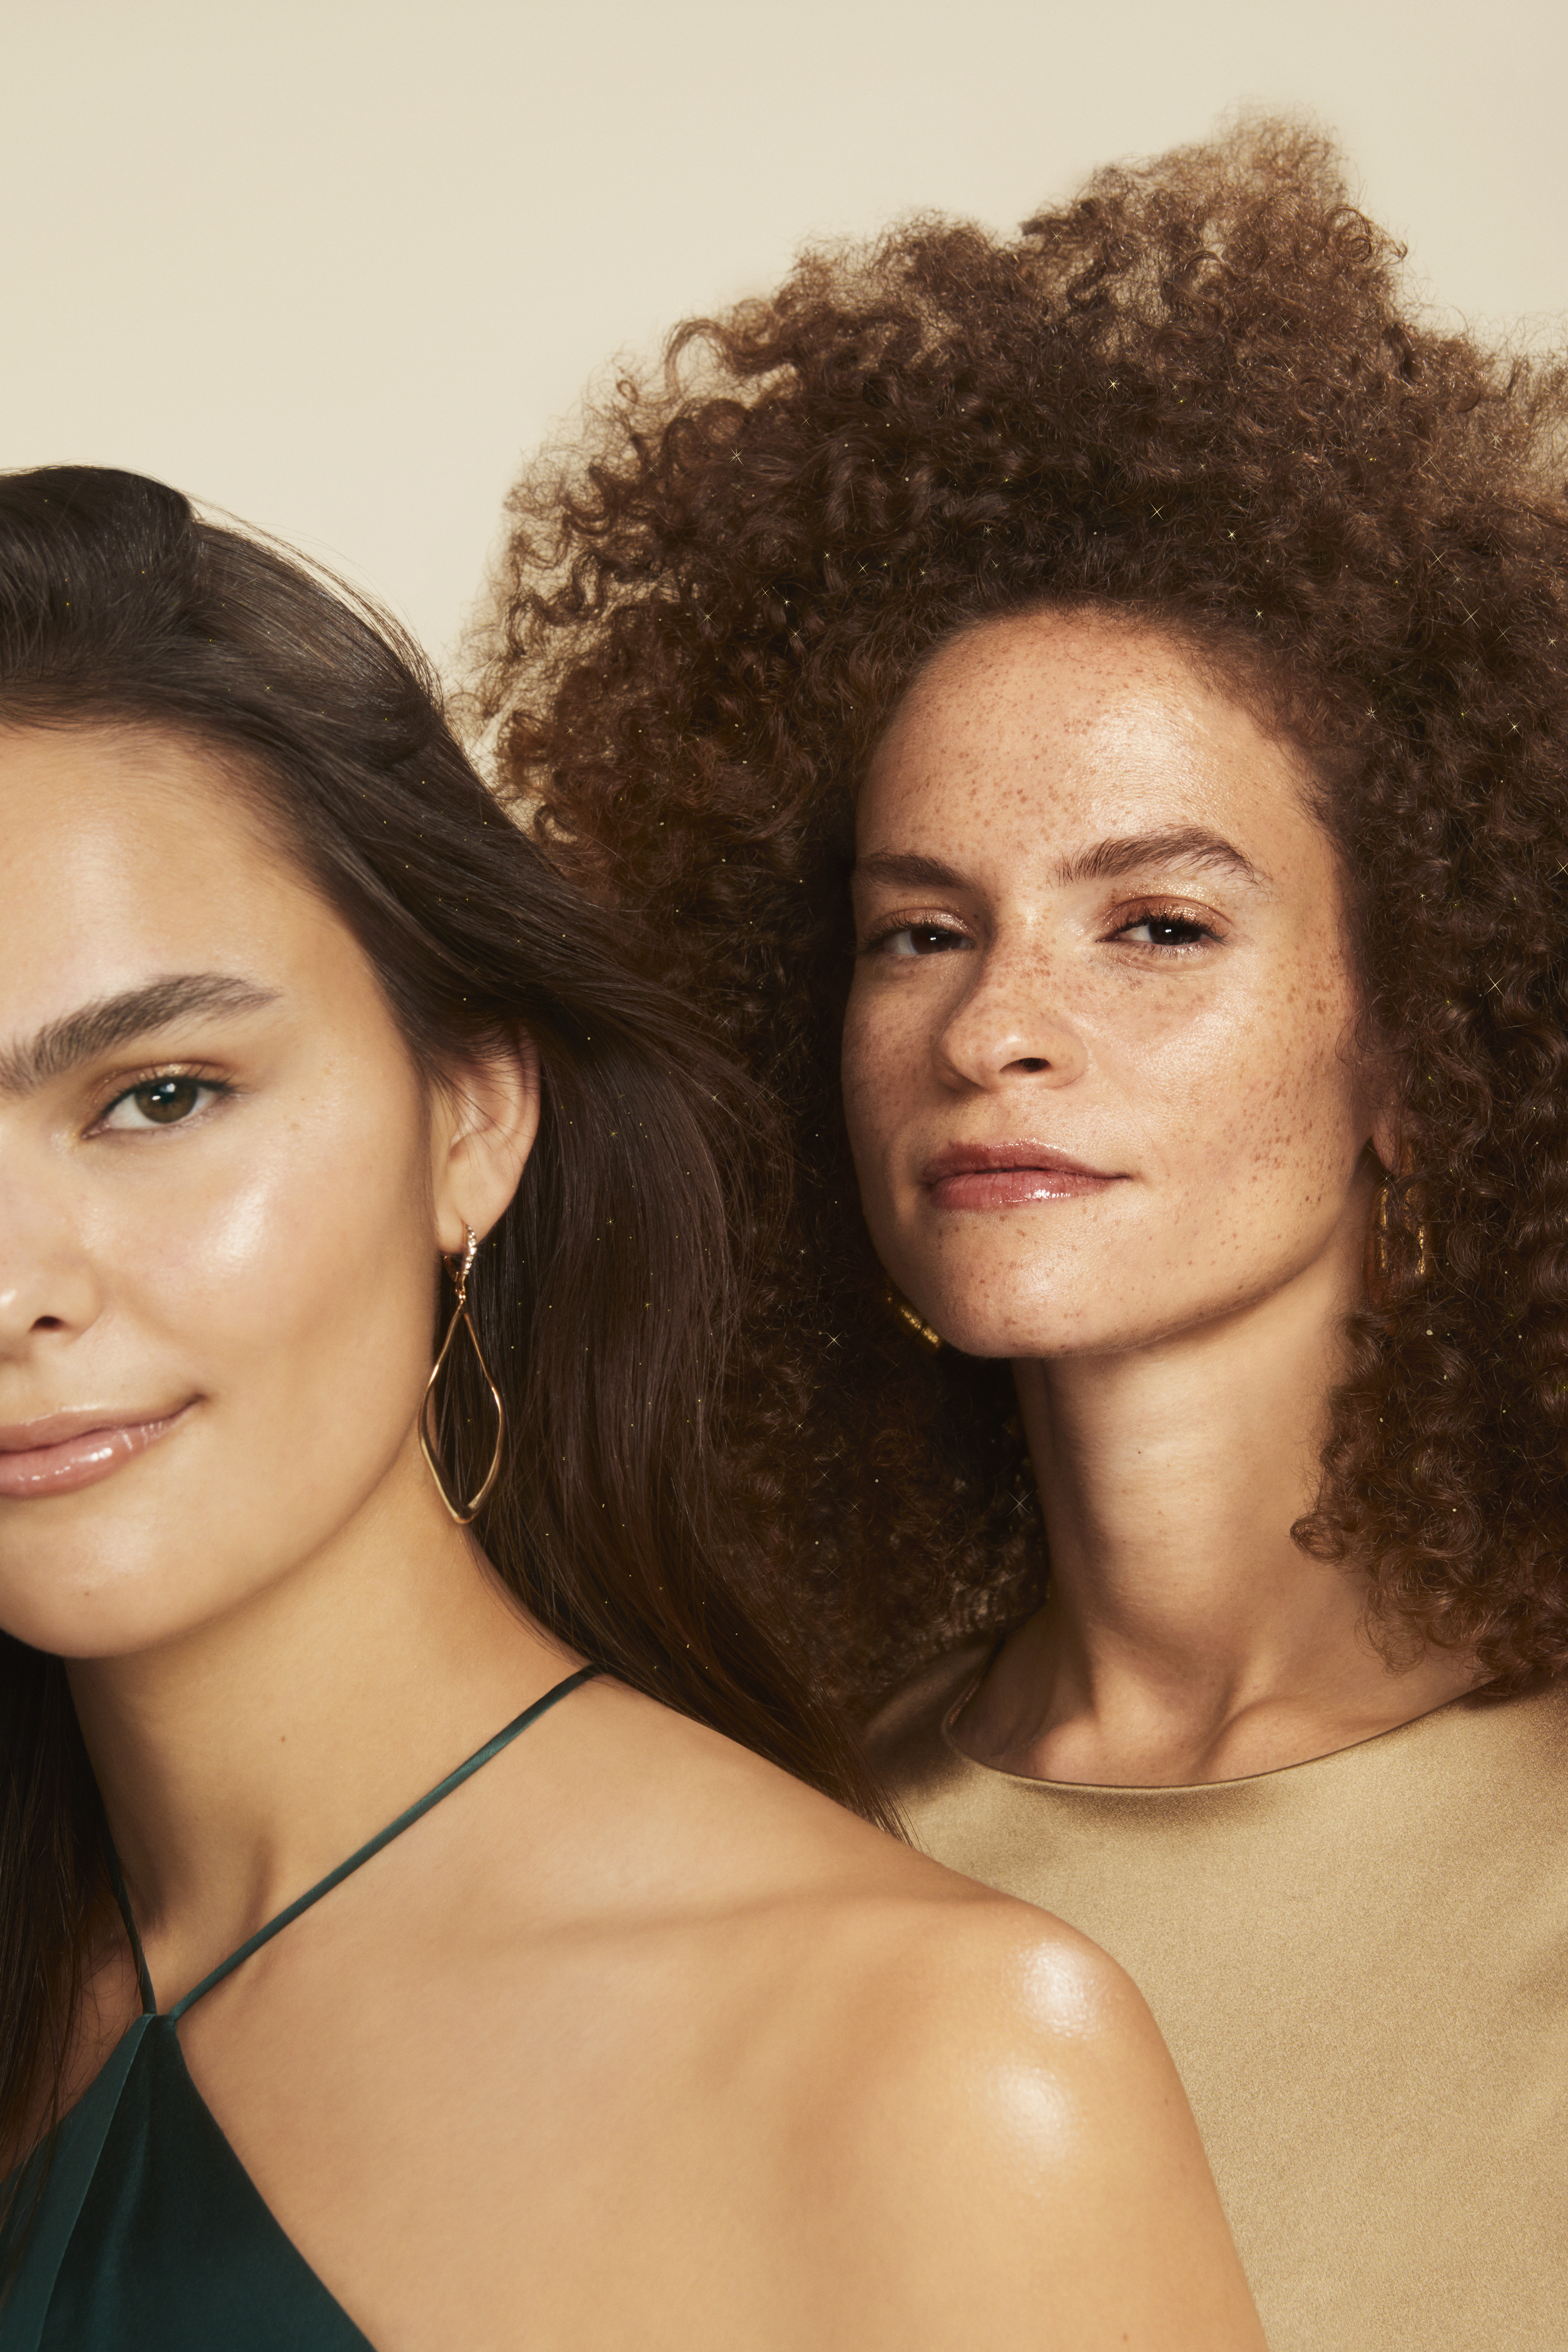 woman with straight brown hair and woman with brown curly hair stand next to each other